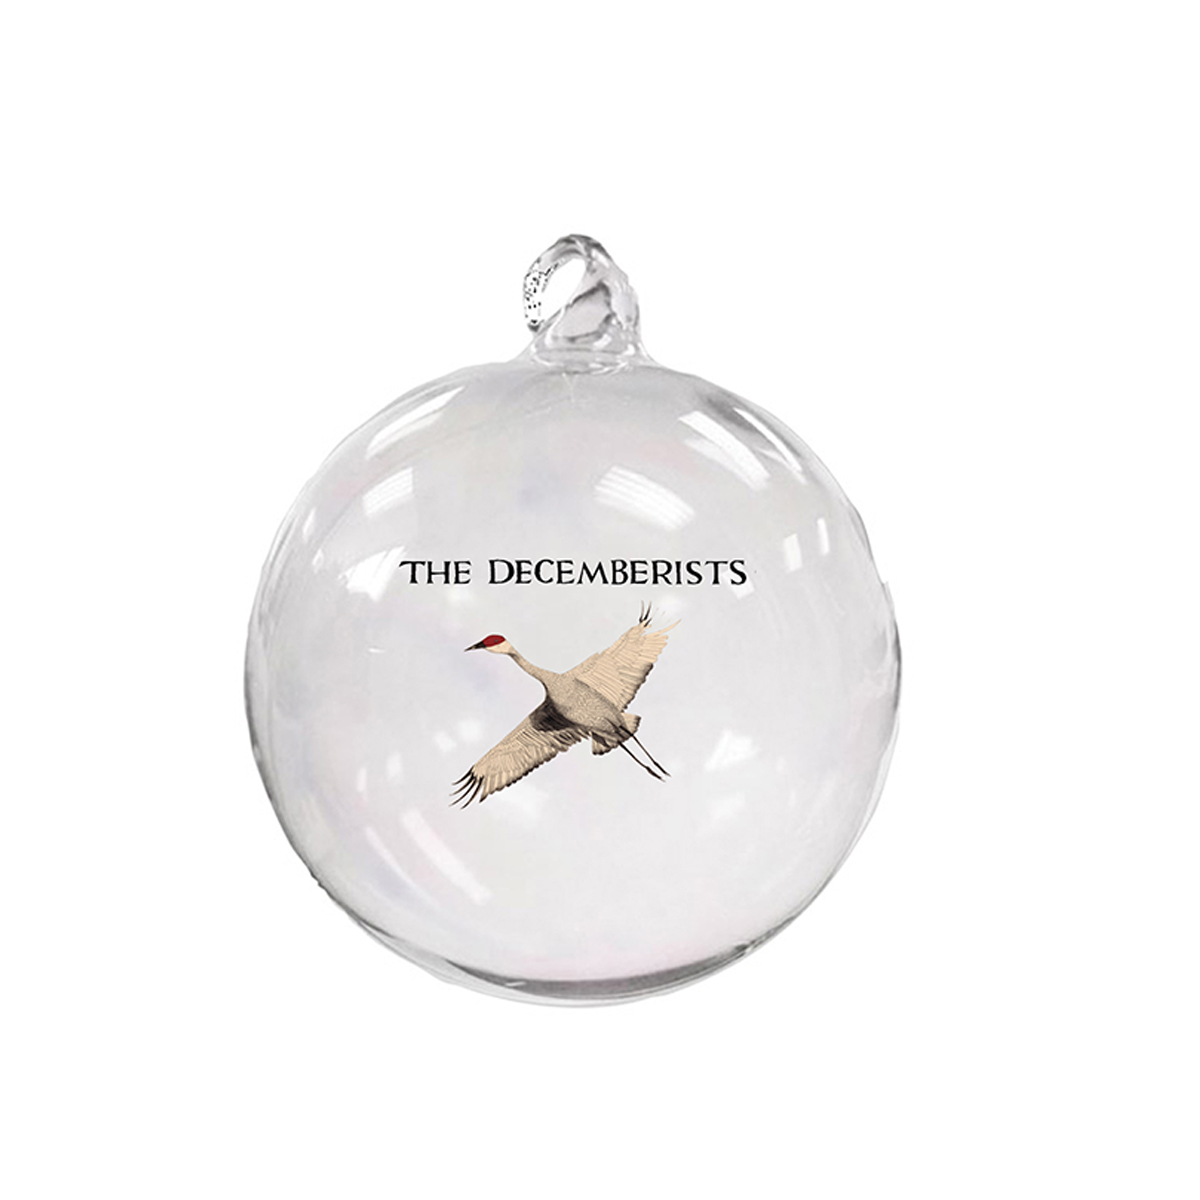 The Decemberists Glass Hand Blown Ornament